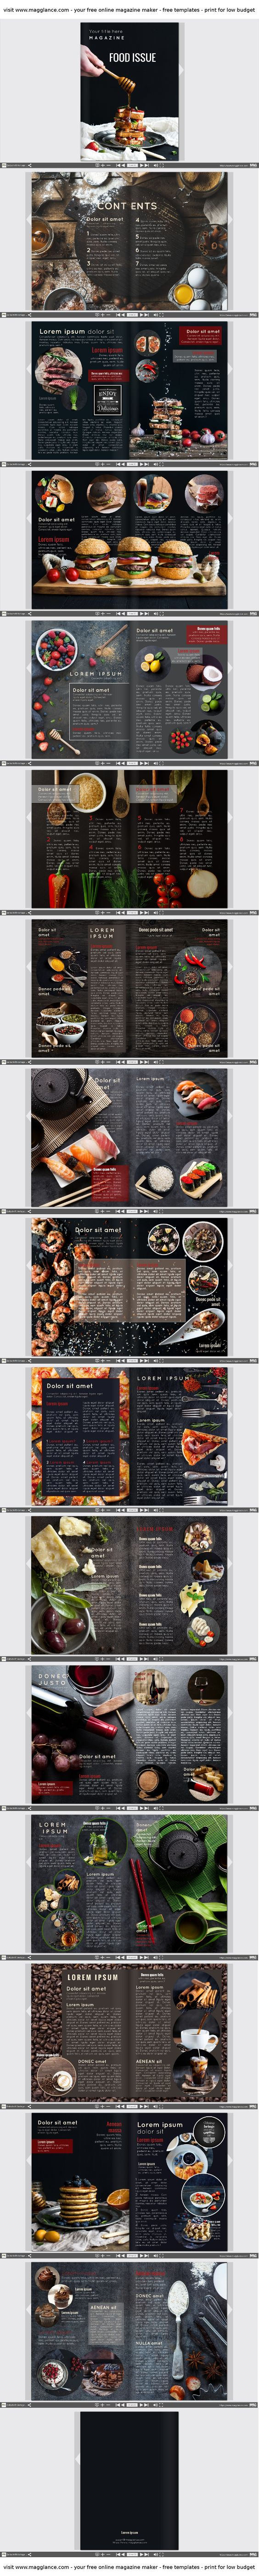 185 best Layouts images on Pinterest | Graph design, Page layout and ...